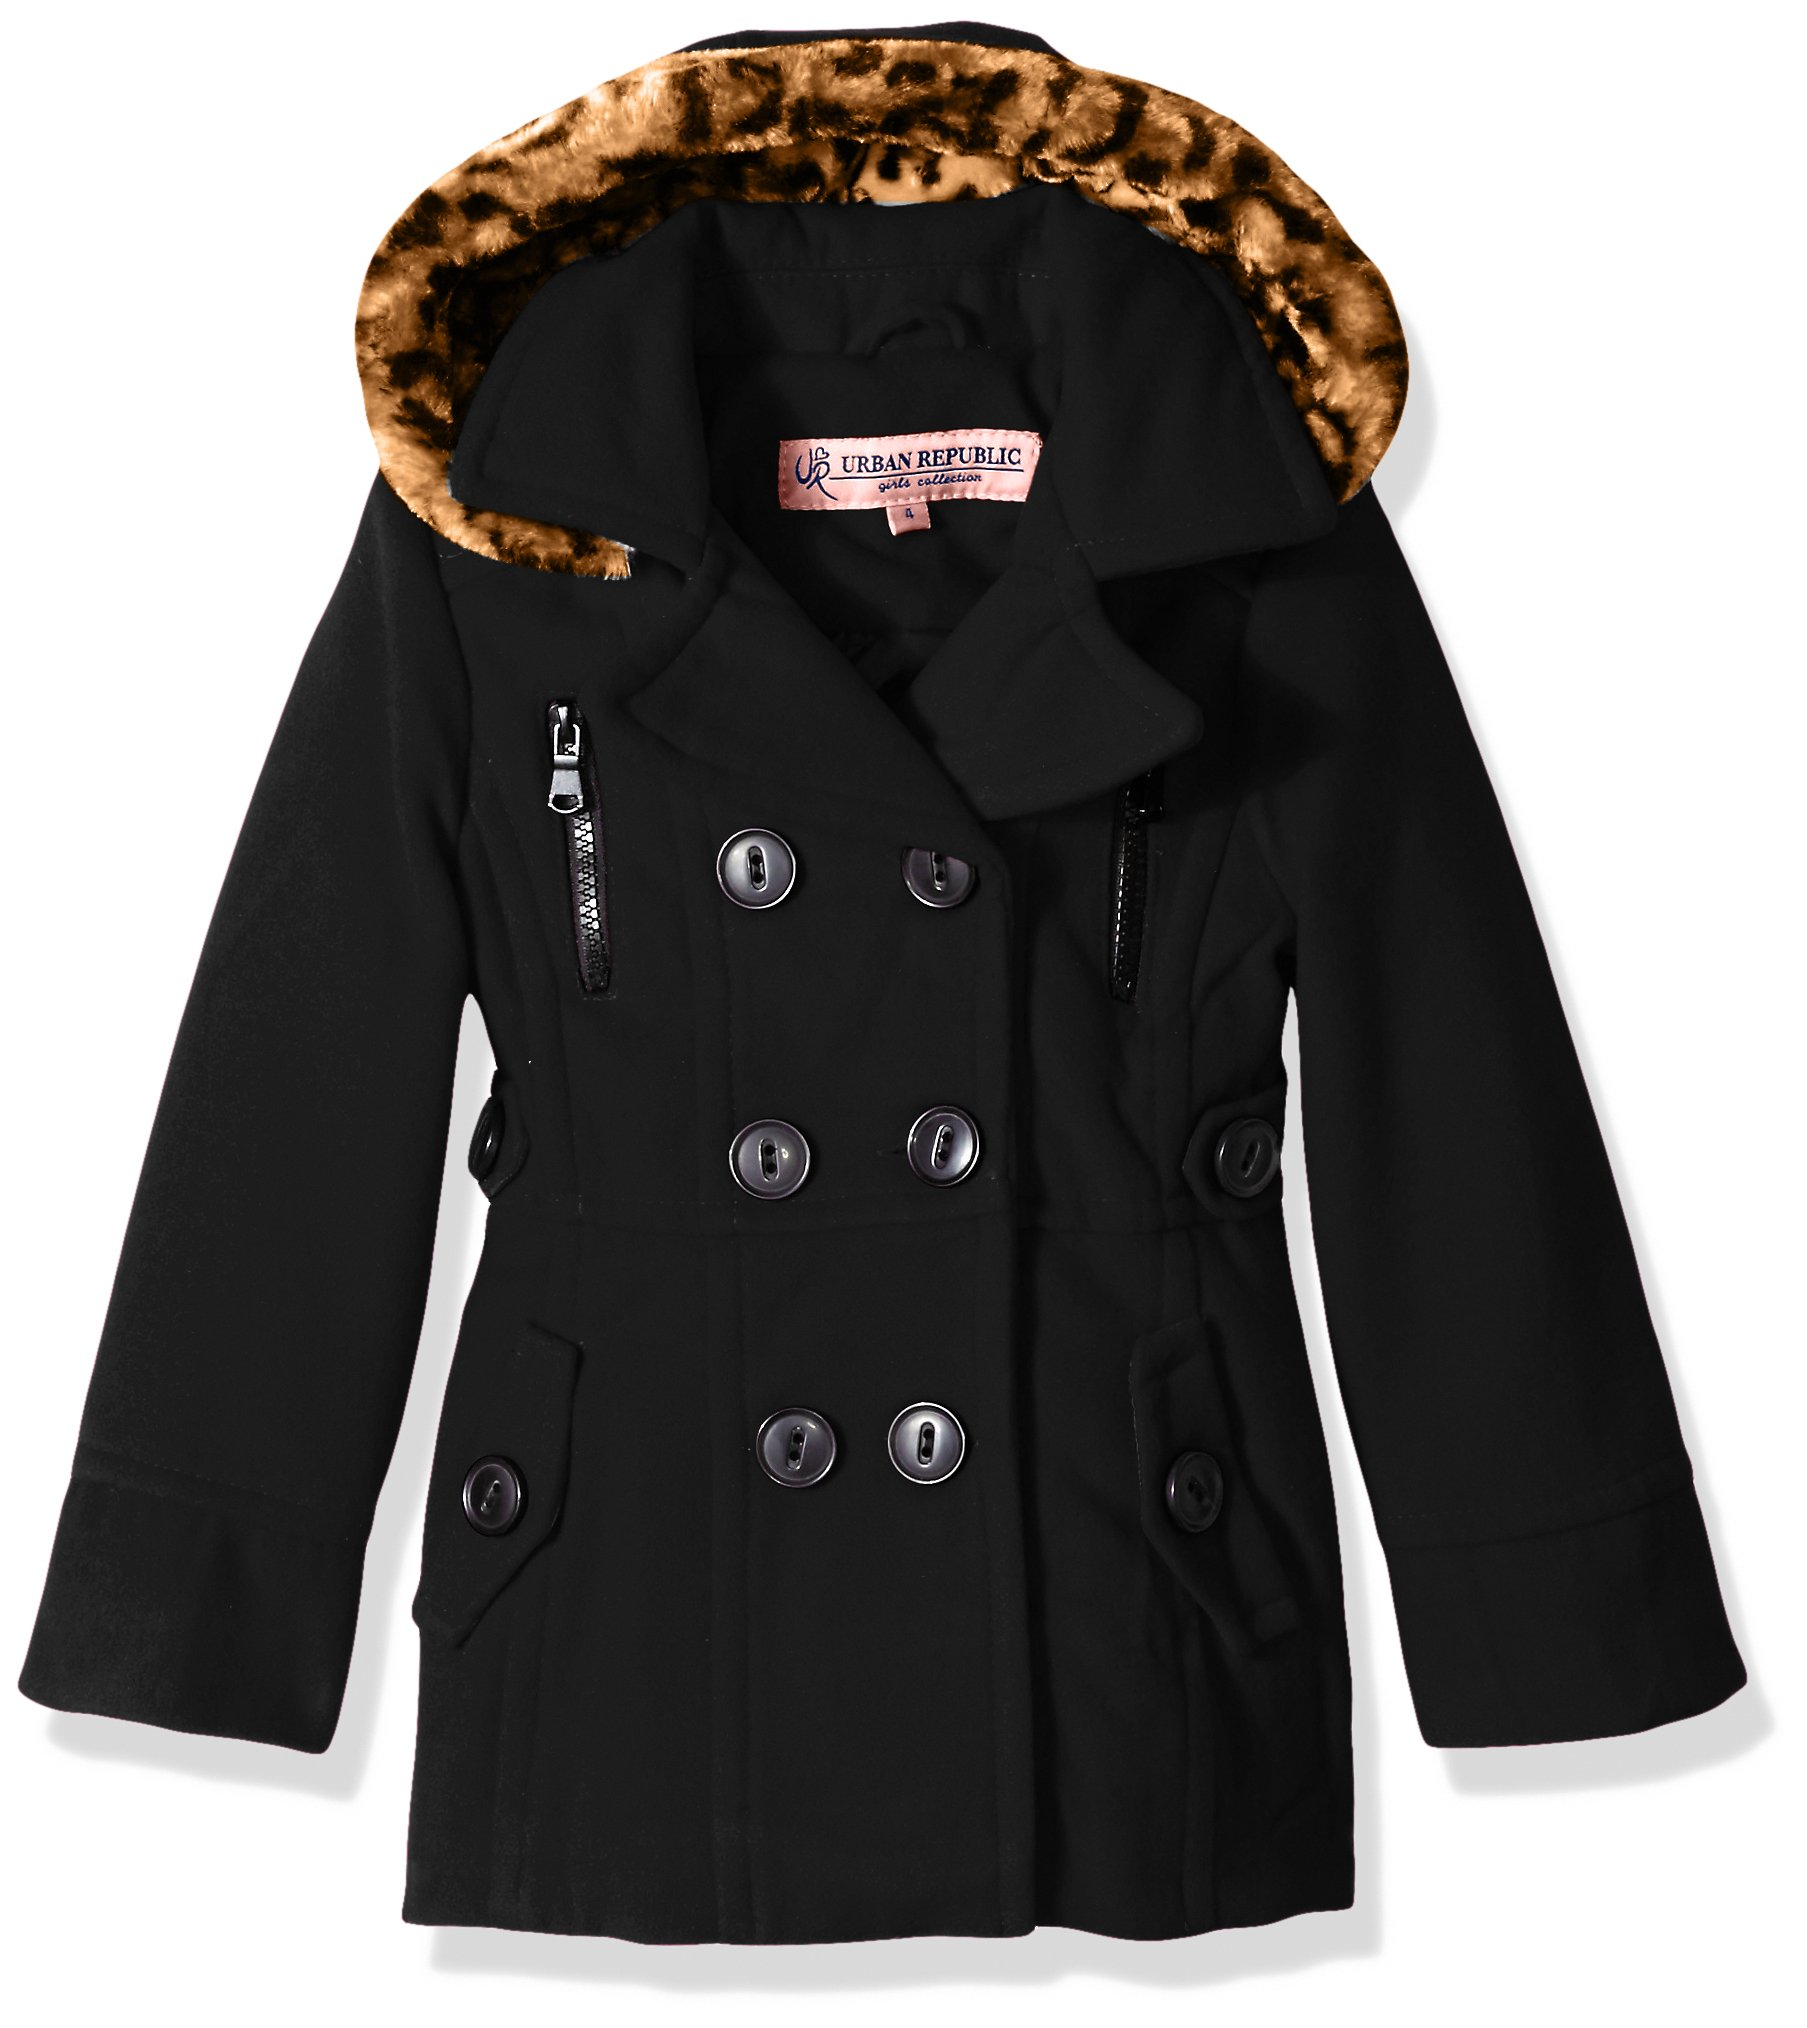 Urban Republic Big Girls' Ur Wool Jacket, Black 5815AB, 16 by Urban Republic